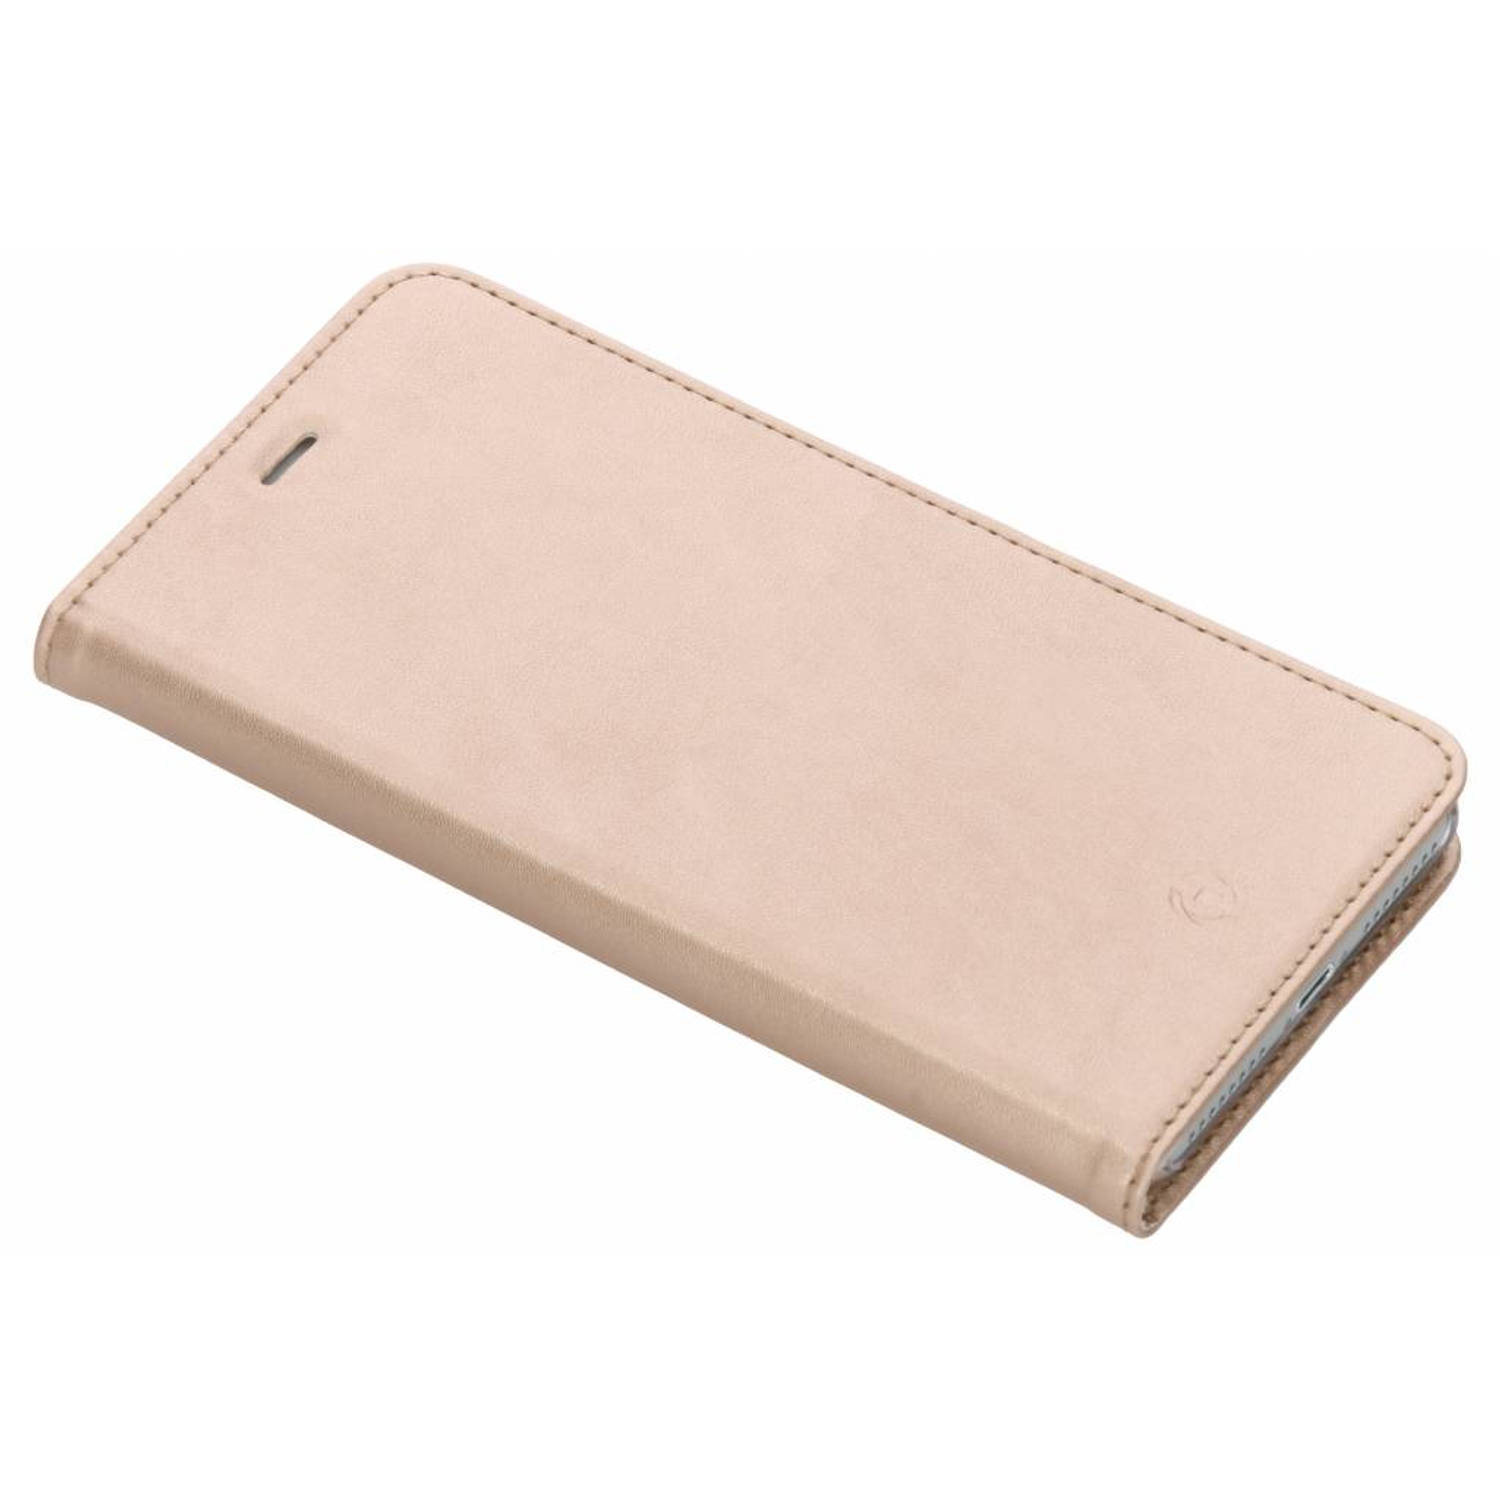 Gouden Air Case voor de iPhone 8 Plus / 7 Plus / 6(s) Plus